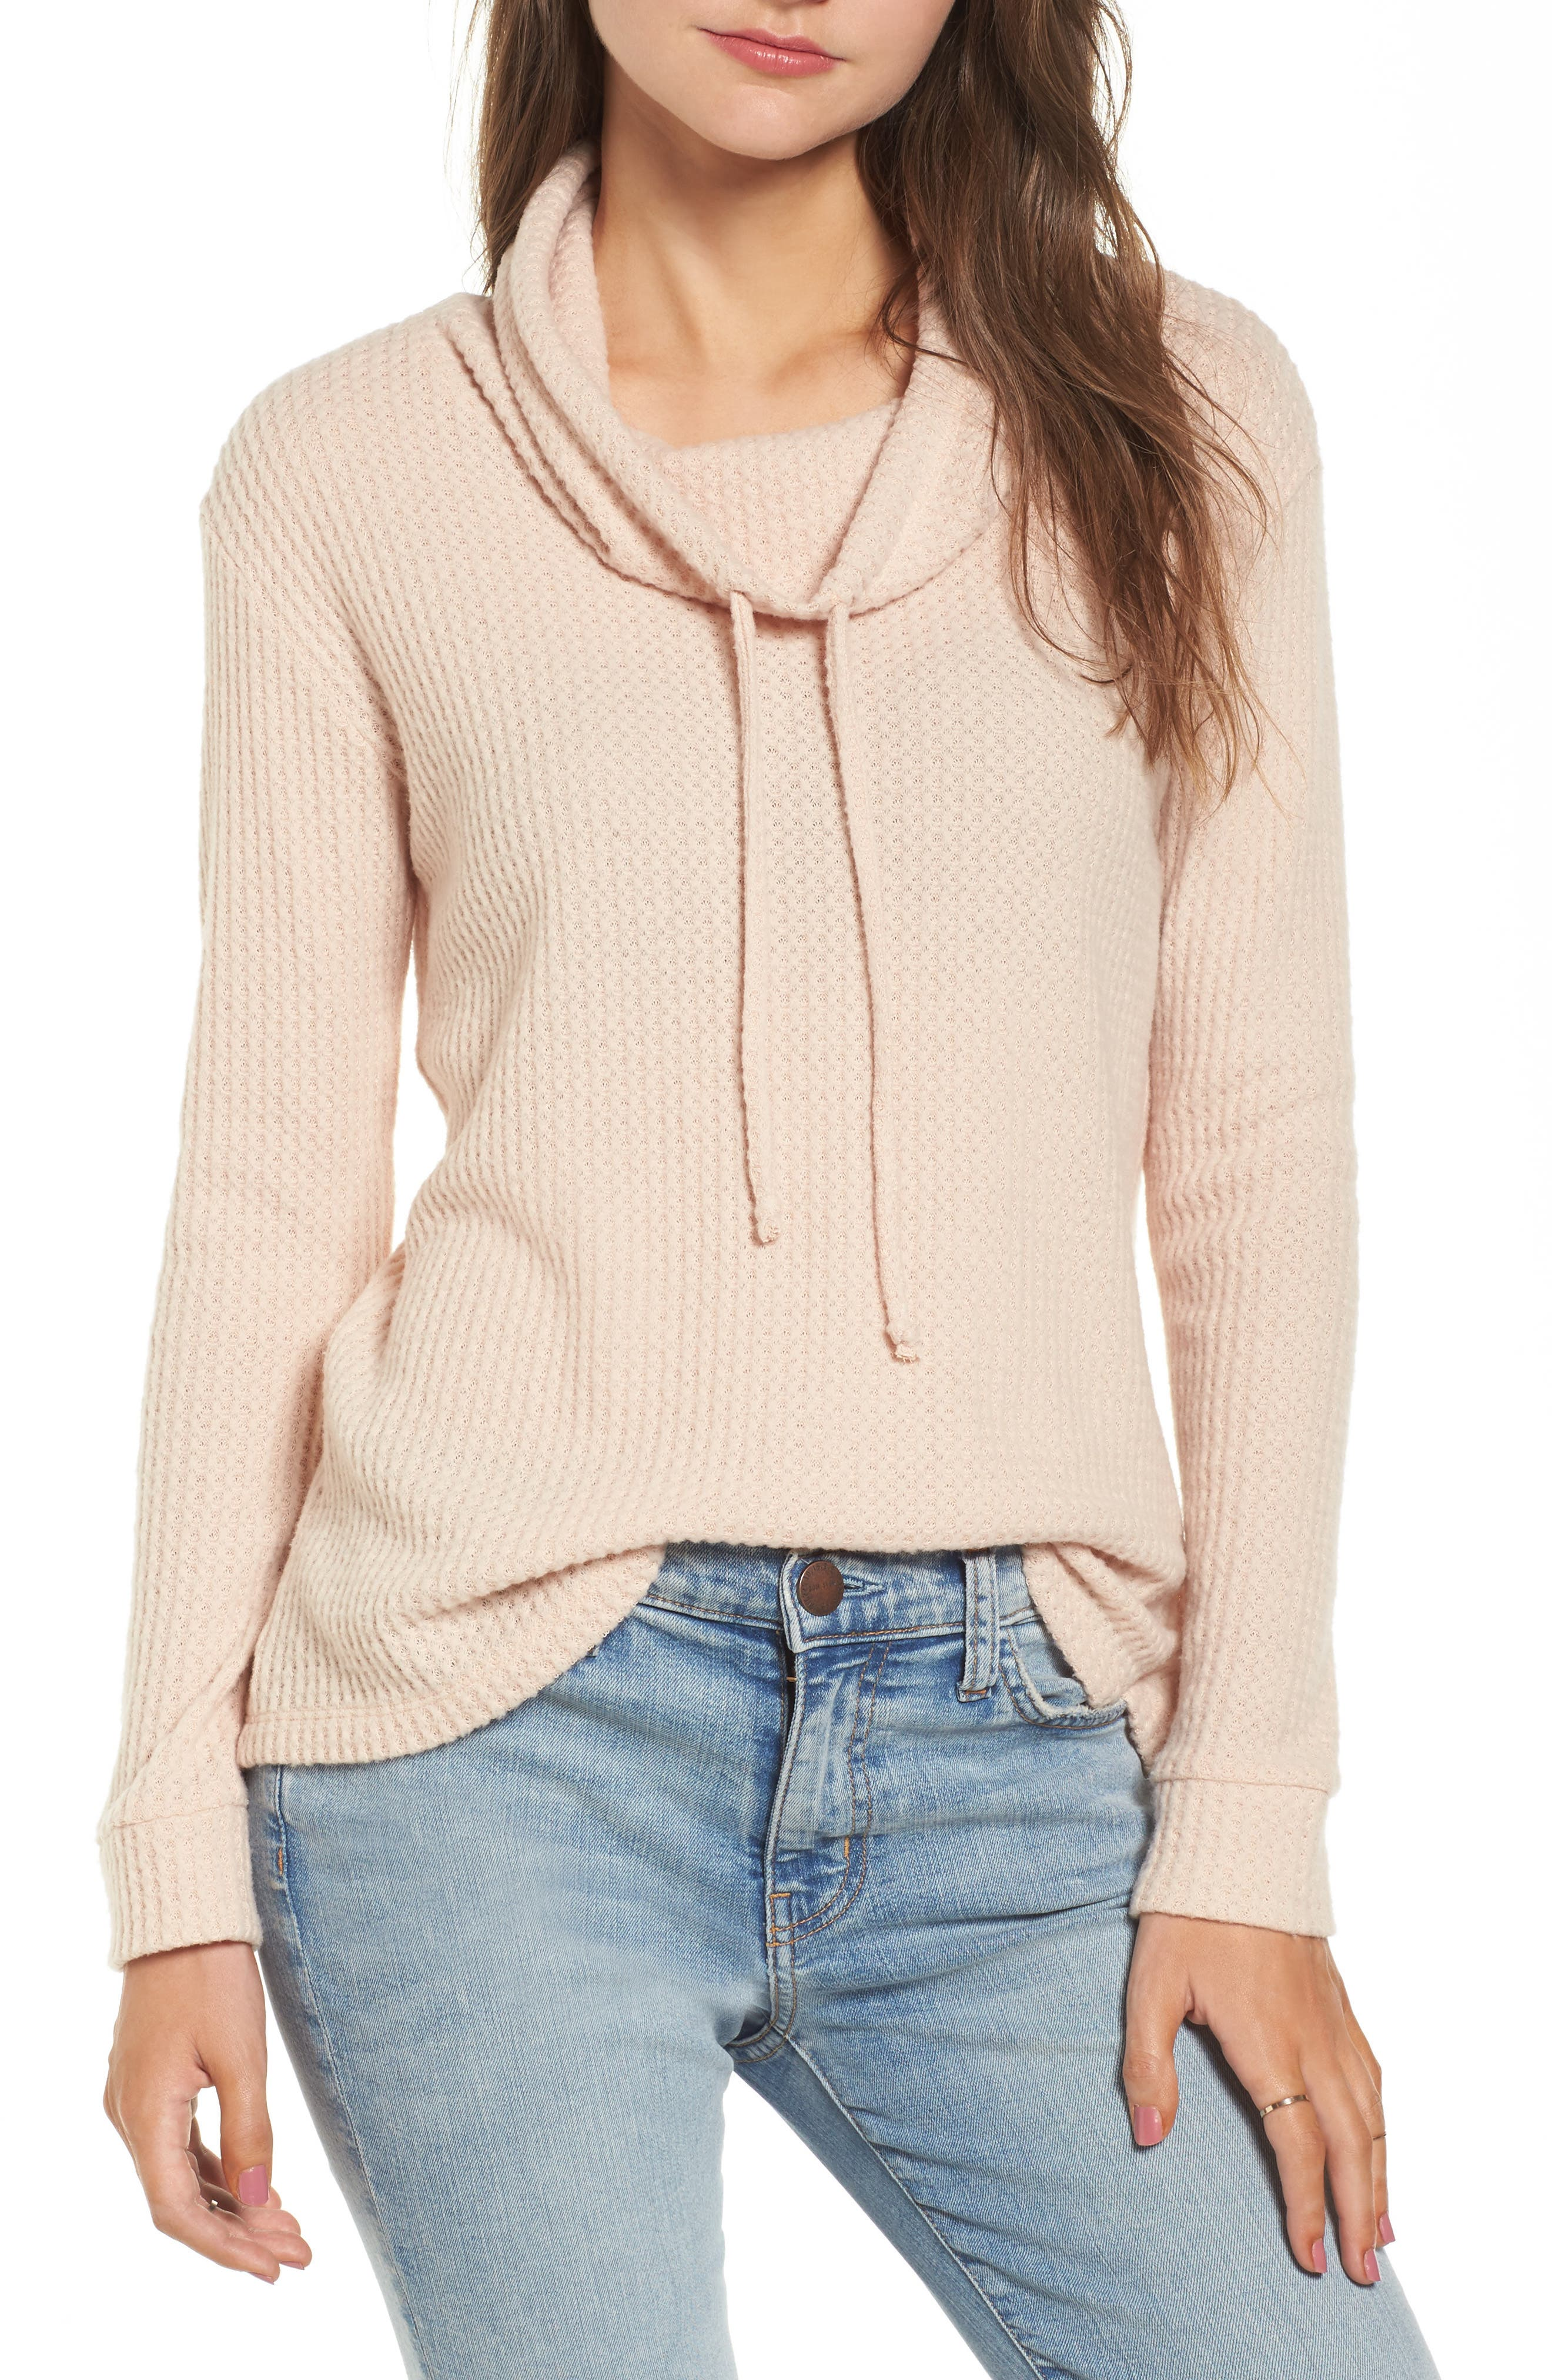 Alternate Image 1 Selected - Socialite Cowl Neck Waffle Knit Top